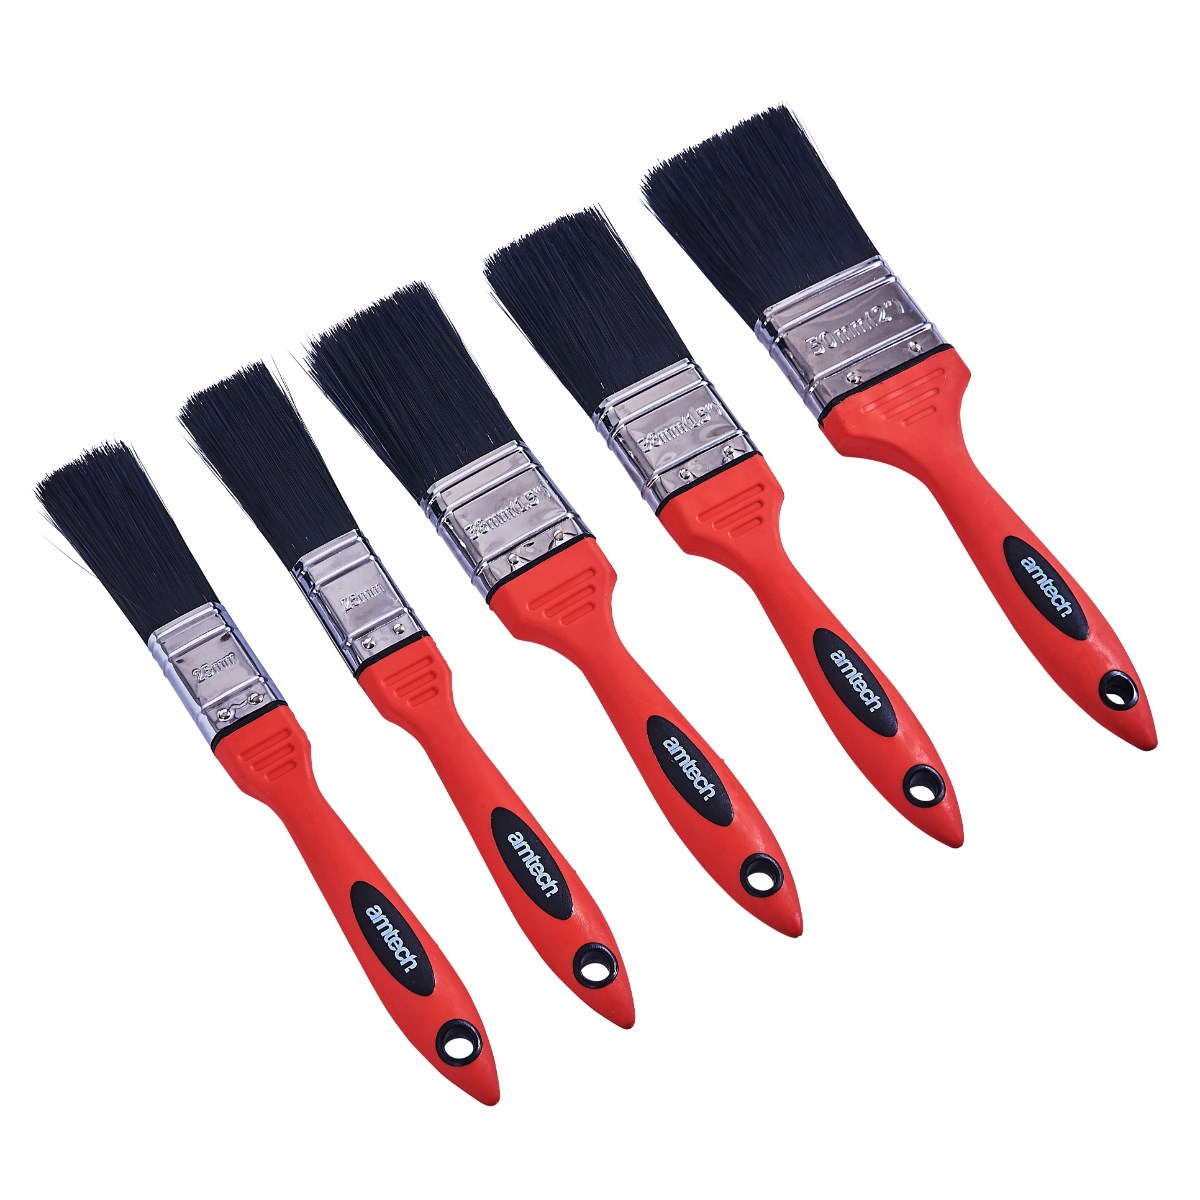 Image of 5pc no bristle loss paint brush set – soft handle